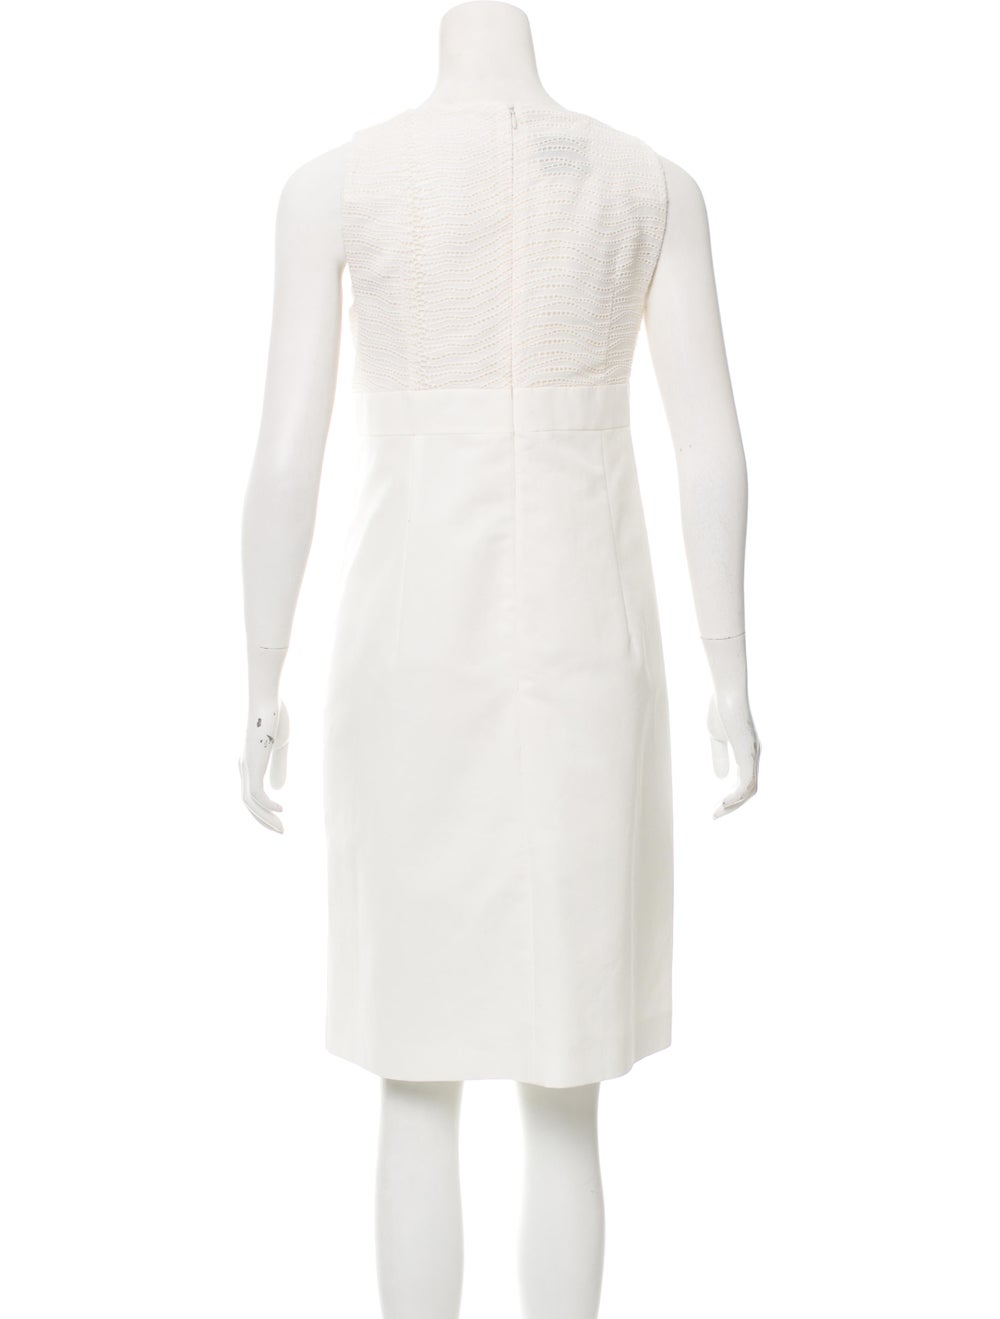 Akris Sleeveless Eyelet Dress - image 3